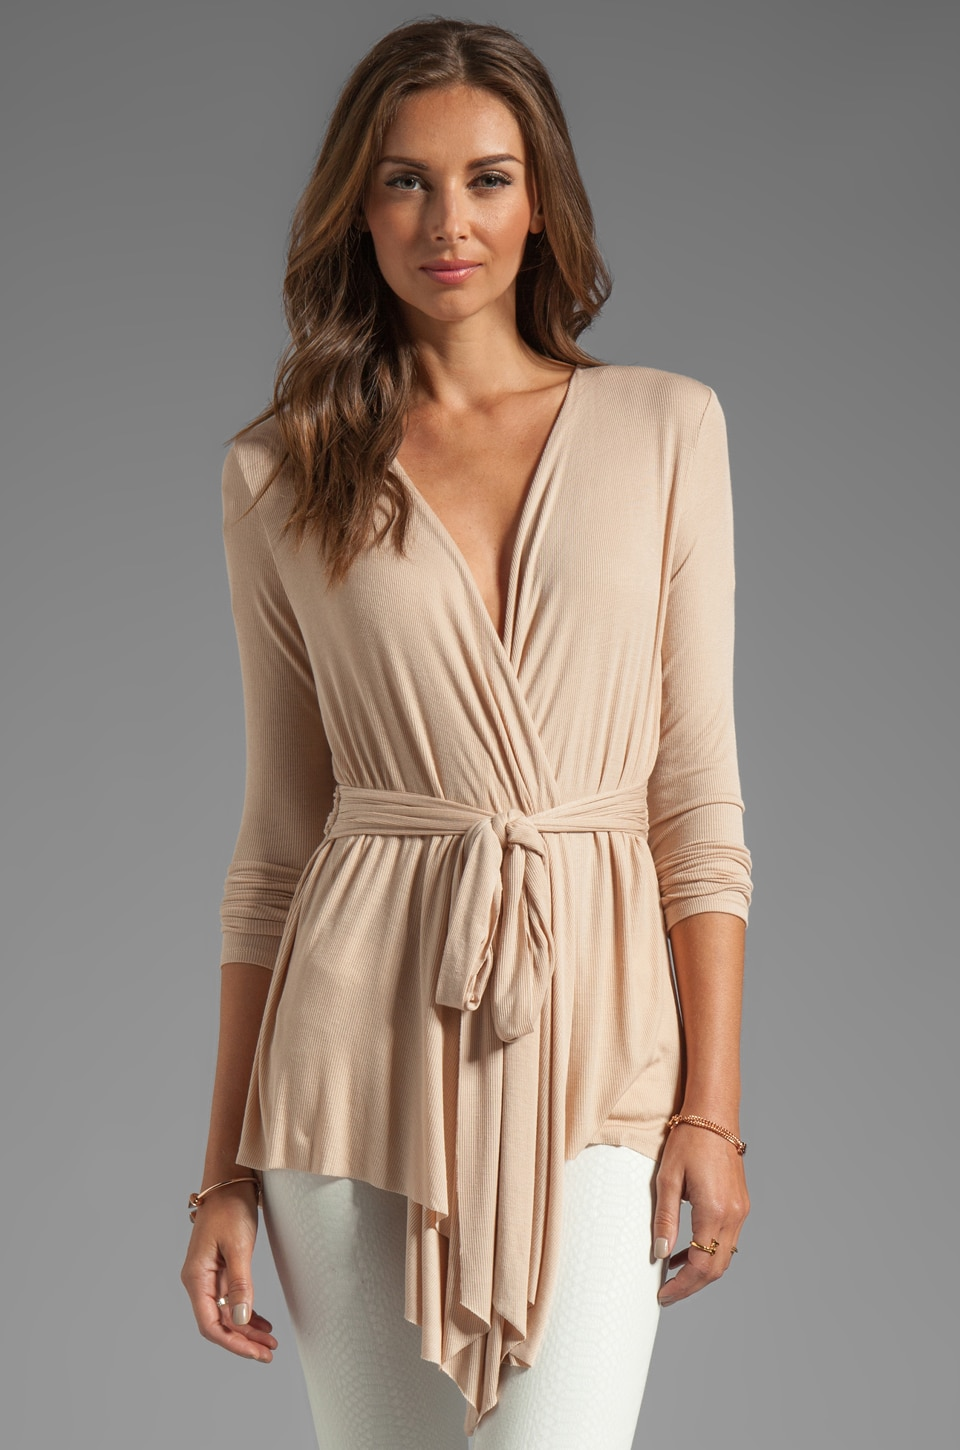 Rachel Pally Rib Rollo Top in Bamboo